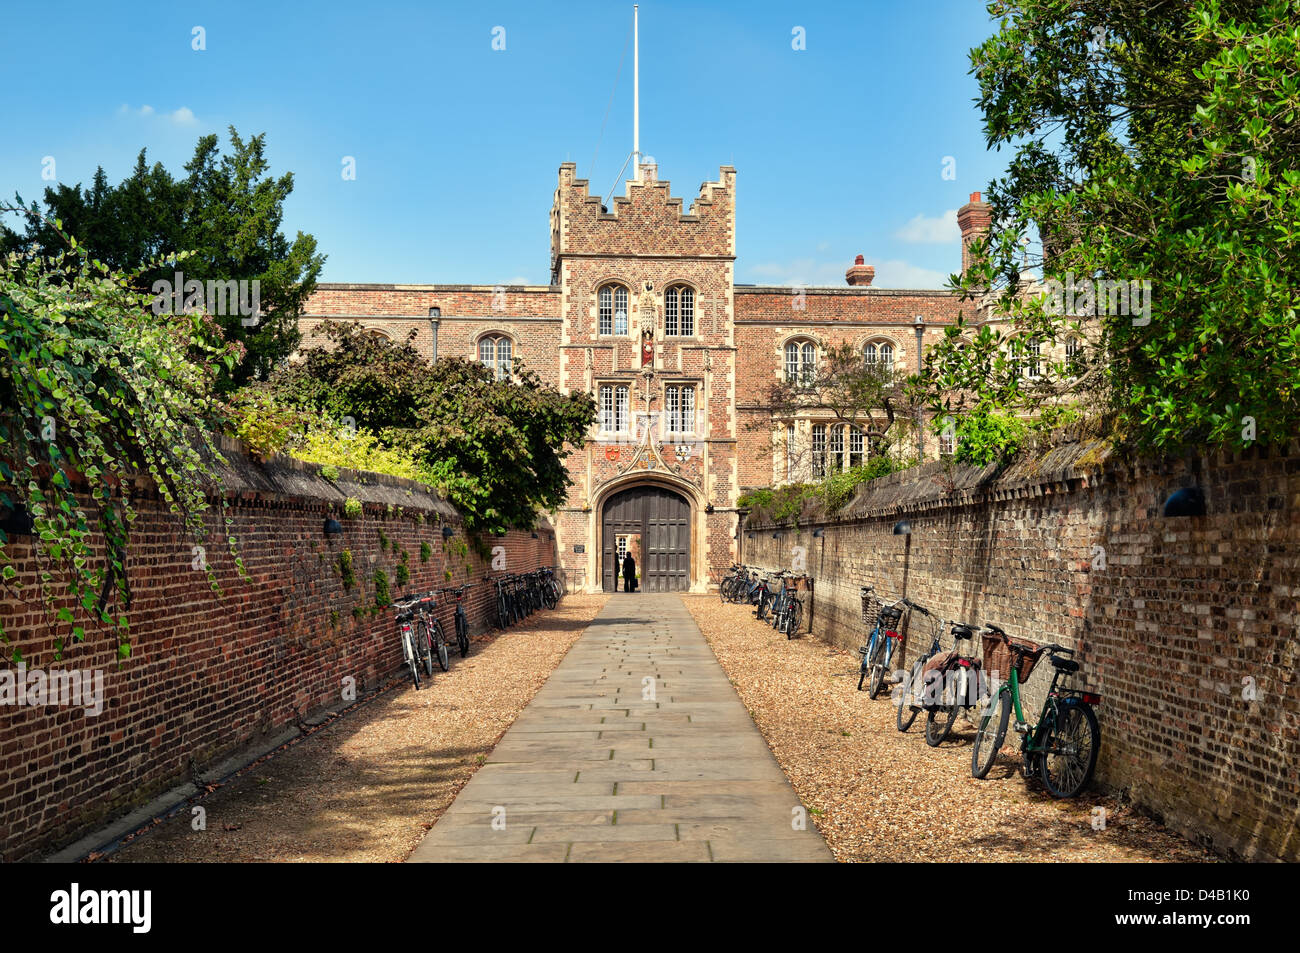 Entrance to Jesus College and bikes. - Stock Image